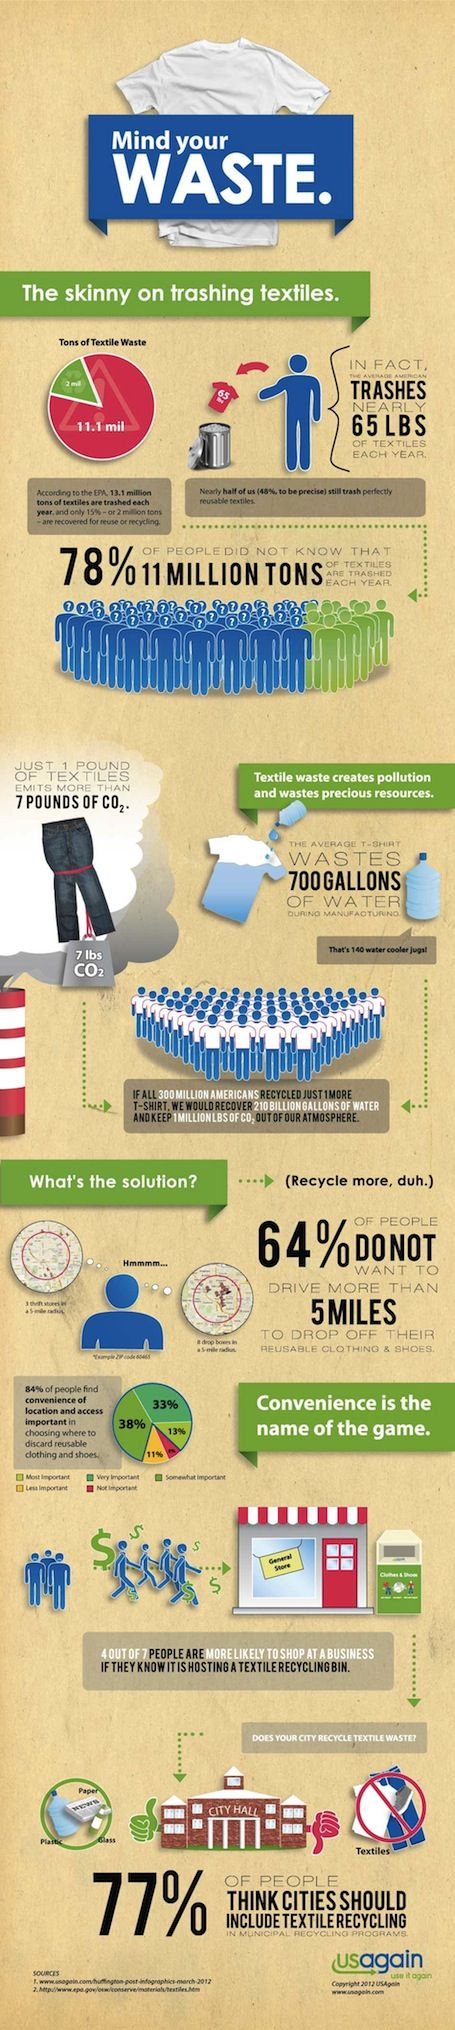 Mind Your Waste Infographic: you'll be amazed at how much textile waste America generates each year.